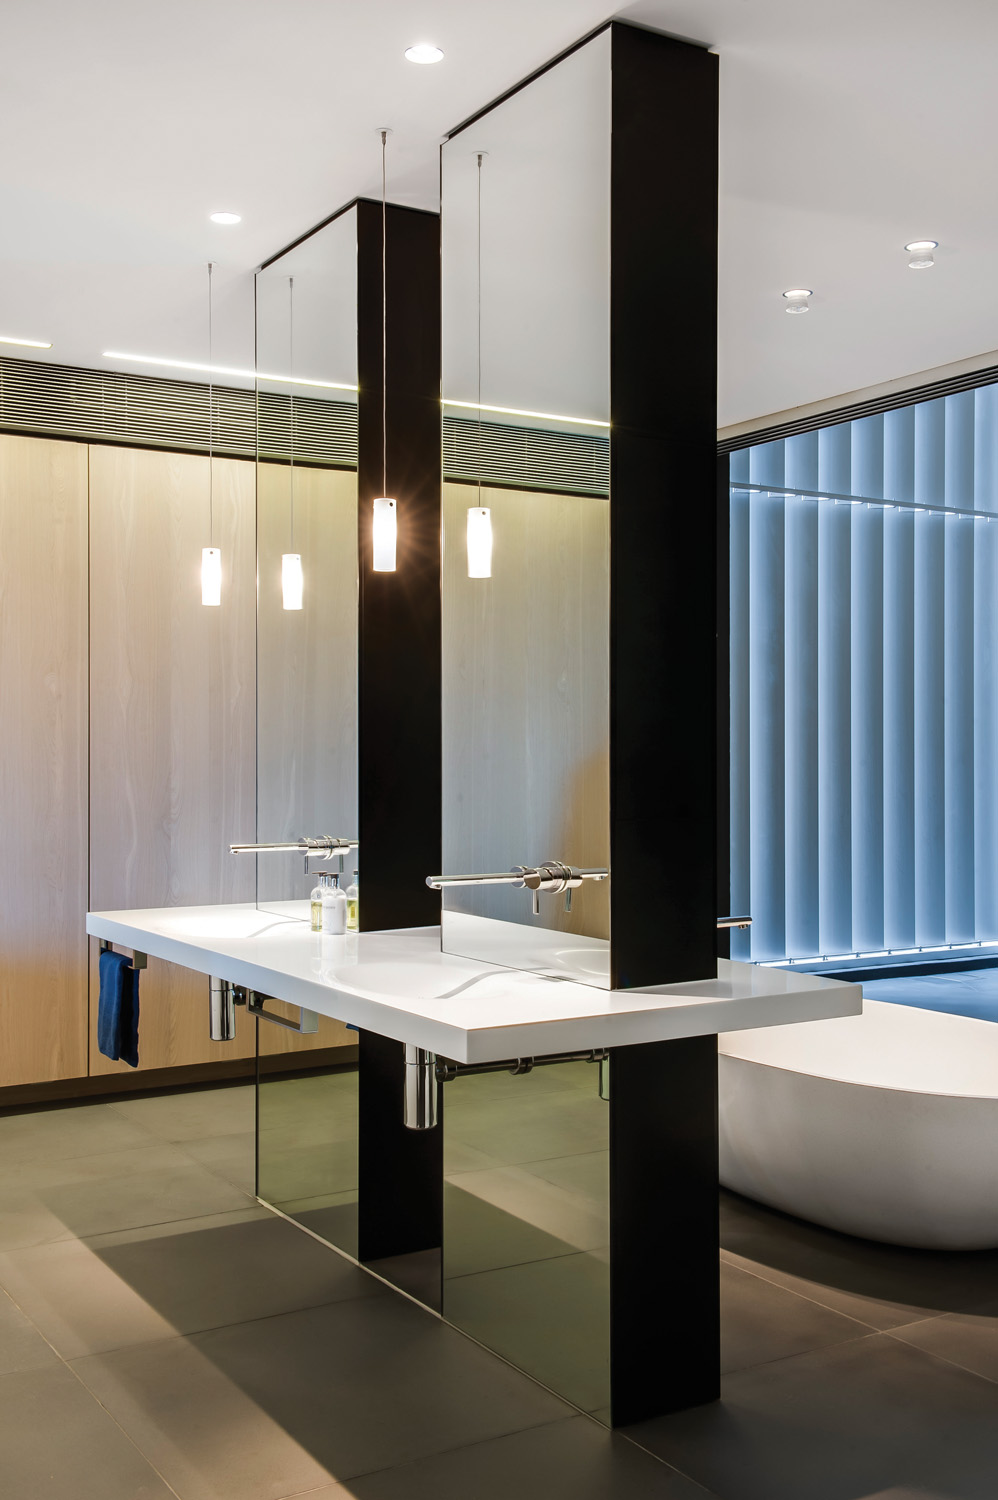 This award-winning bathroom design reflects the cutting-edge architect-designed home